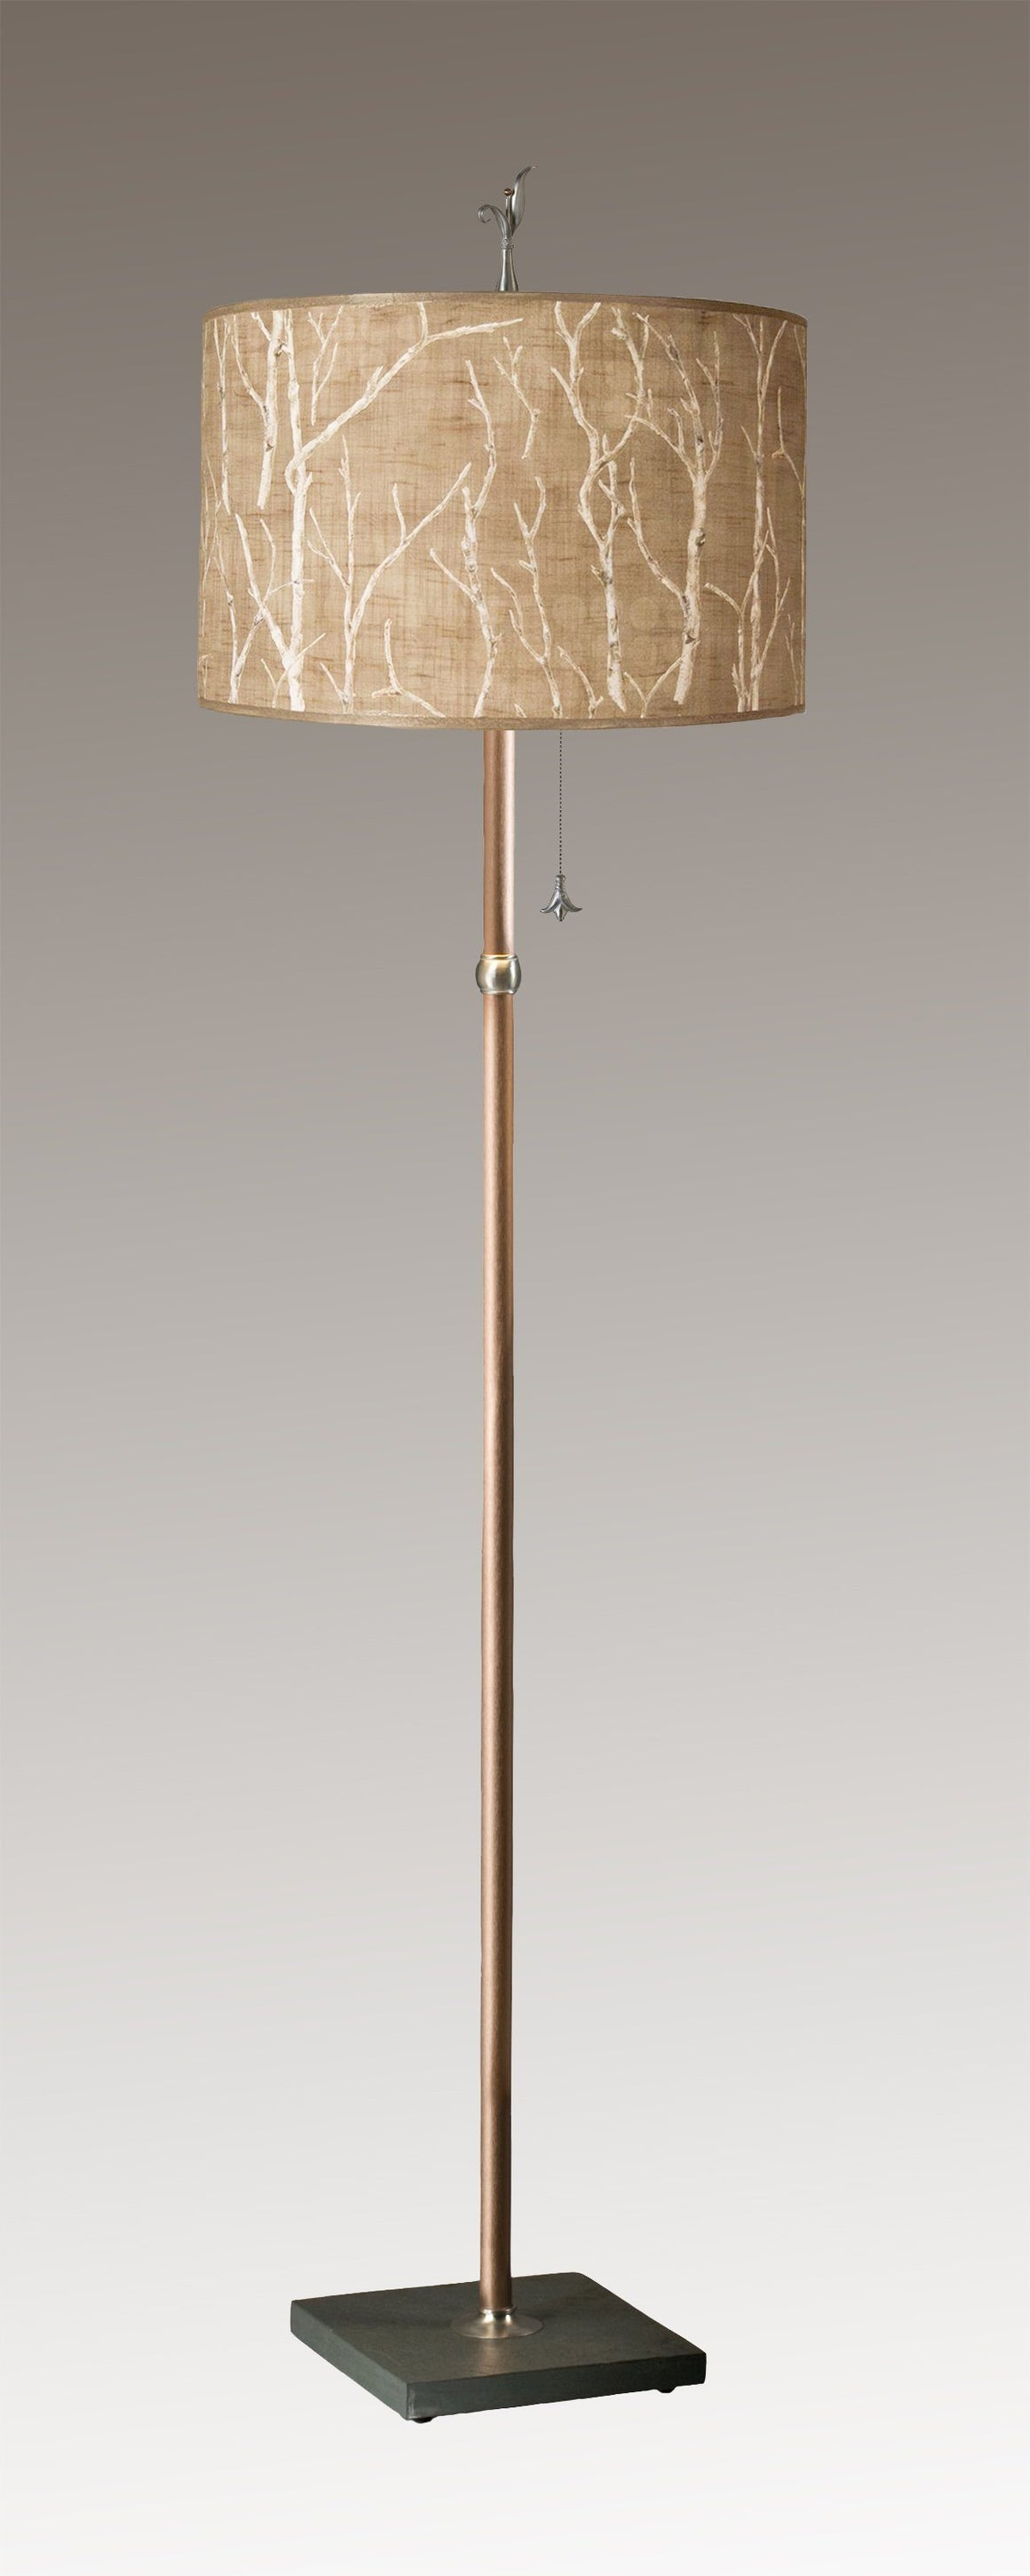 Copper Floor Lamp on Vermont Slate with Large Drum Shade in Twigs